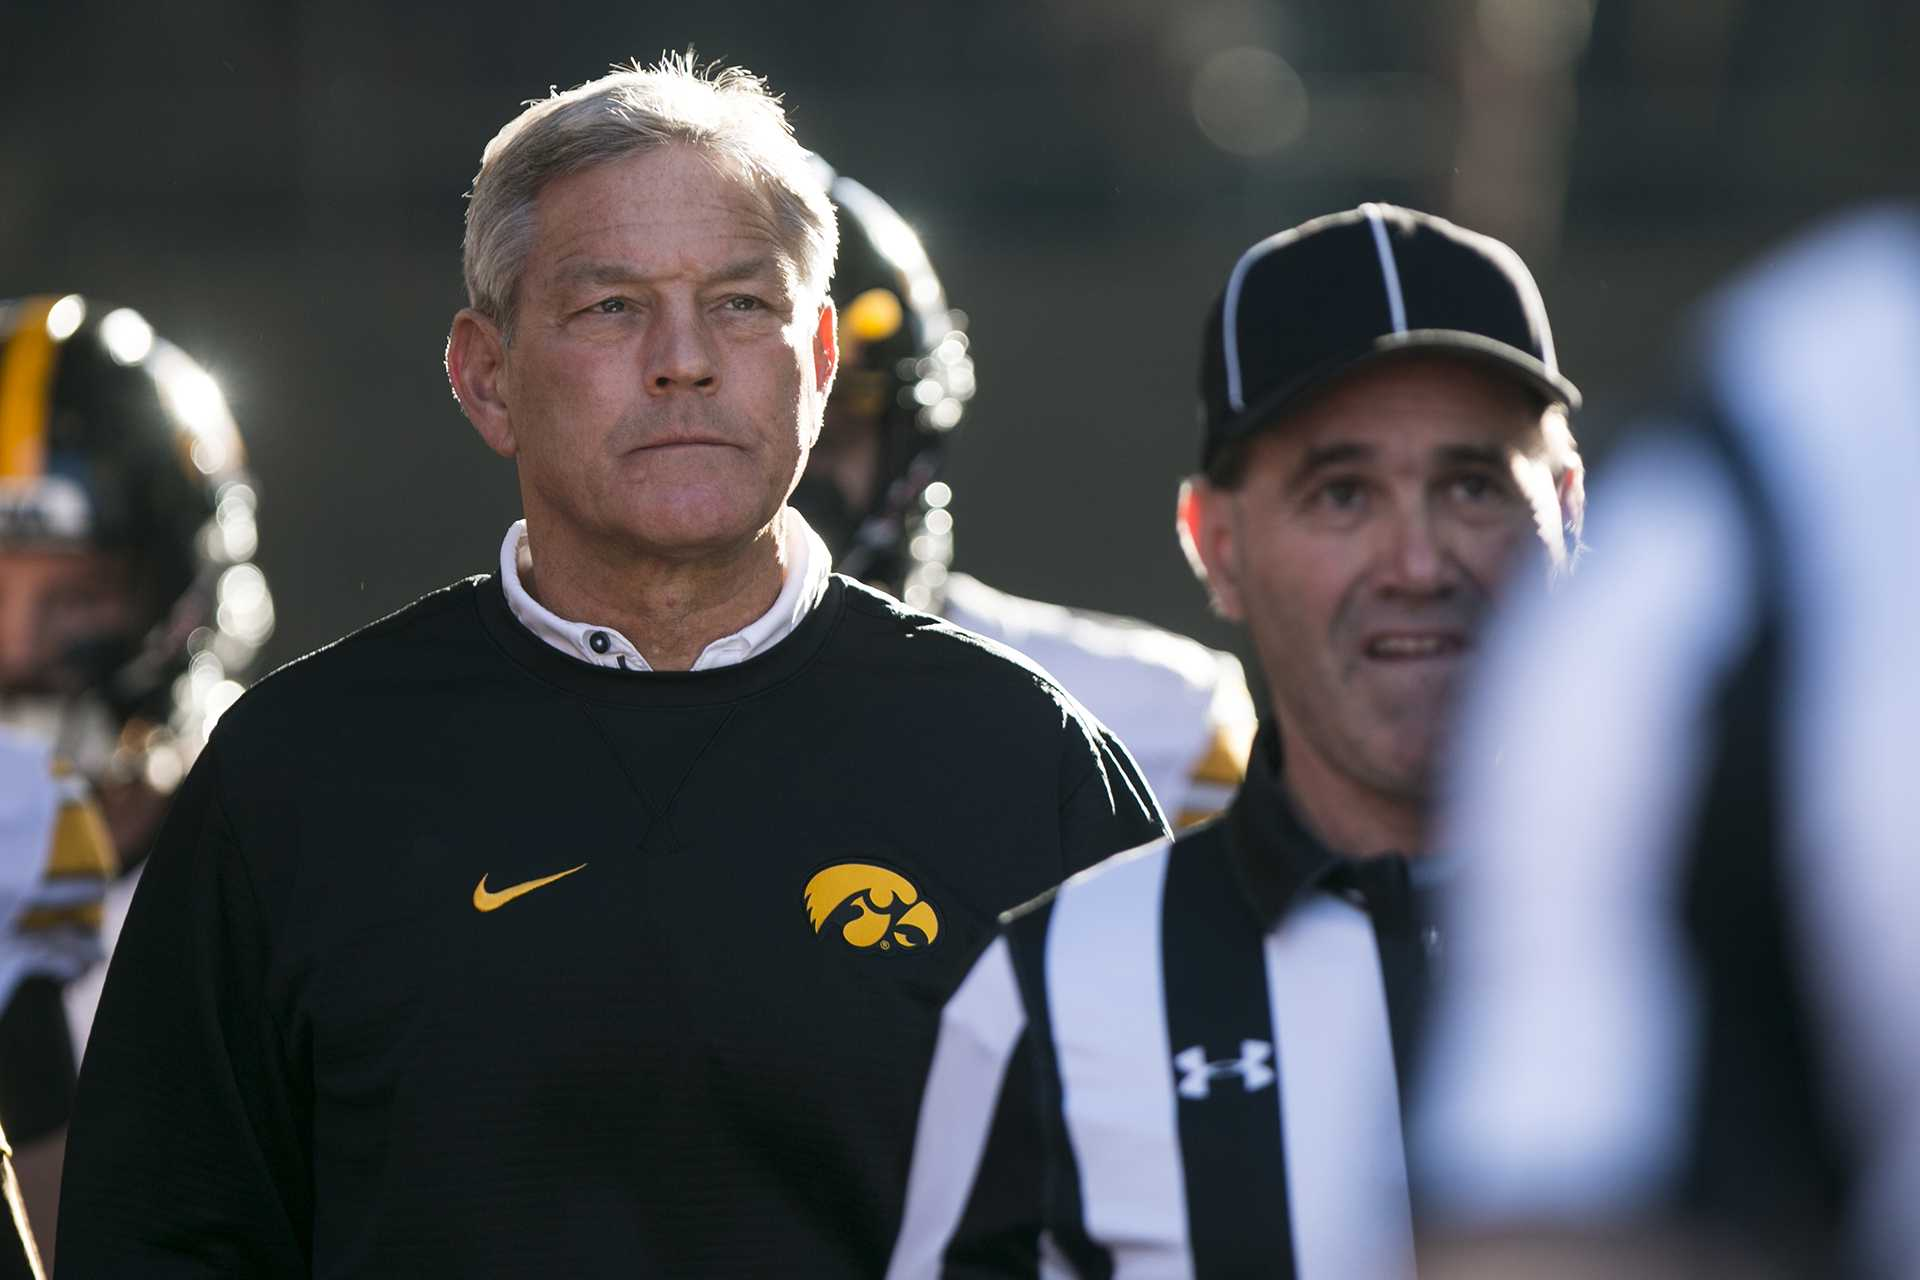 Iowa head coach Kirk Ferentz walks out of the tunnel before the Iowa/Nebraska football game in Memorial Stadium on Friday, Nov. 24, 2017. The Hawkeyes defeated the Cornhuskers, 56-14. (Joseph Cress/The Daily Iowan)